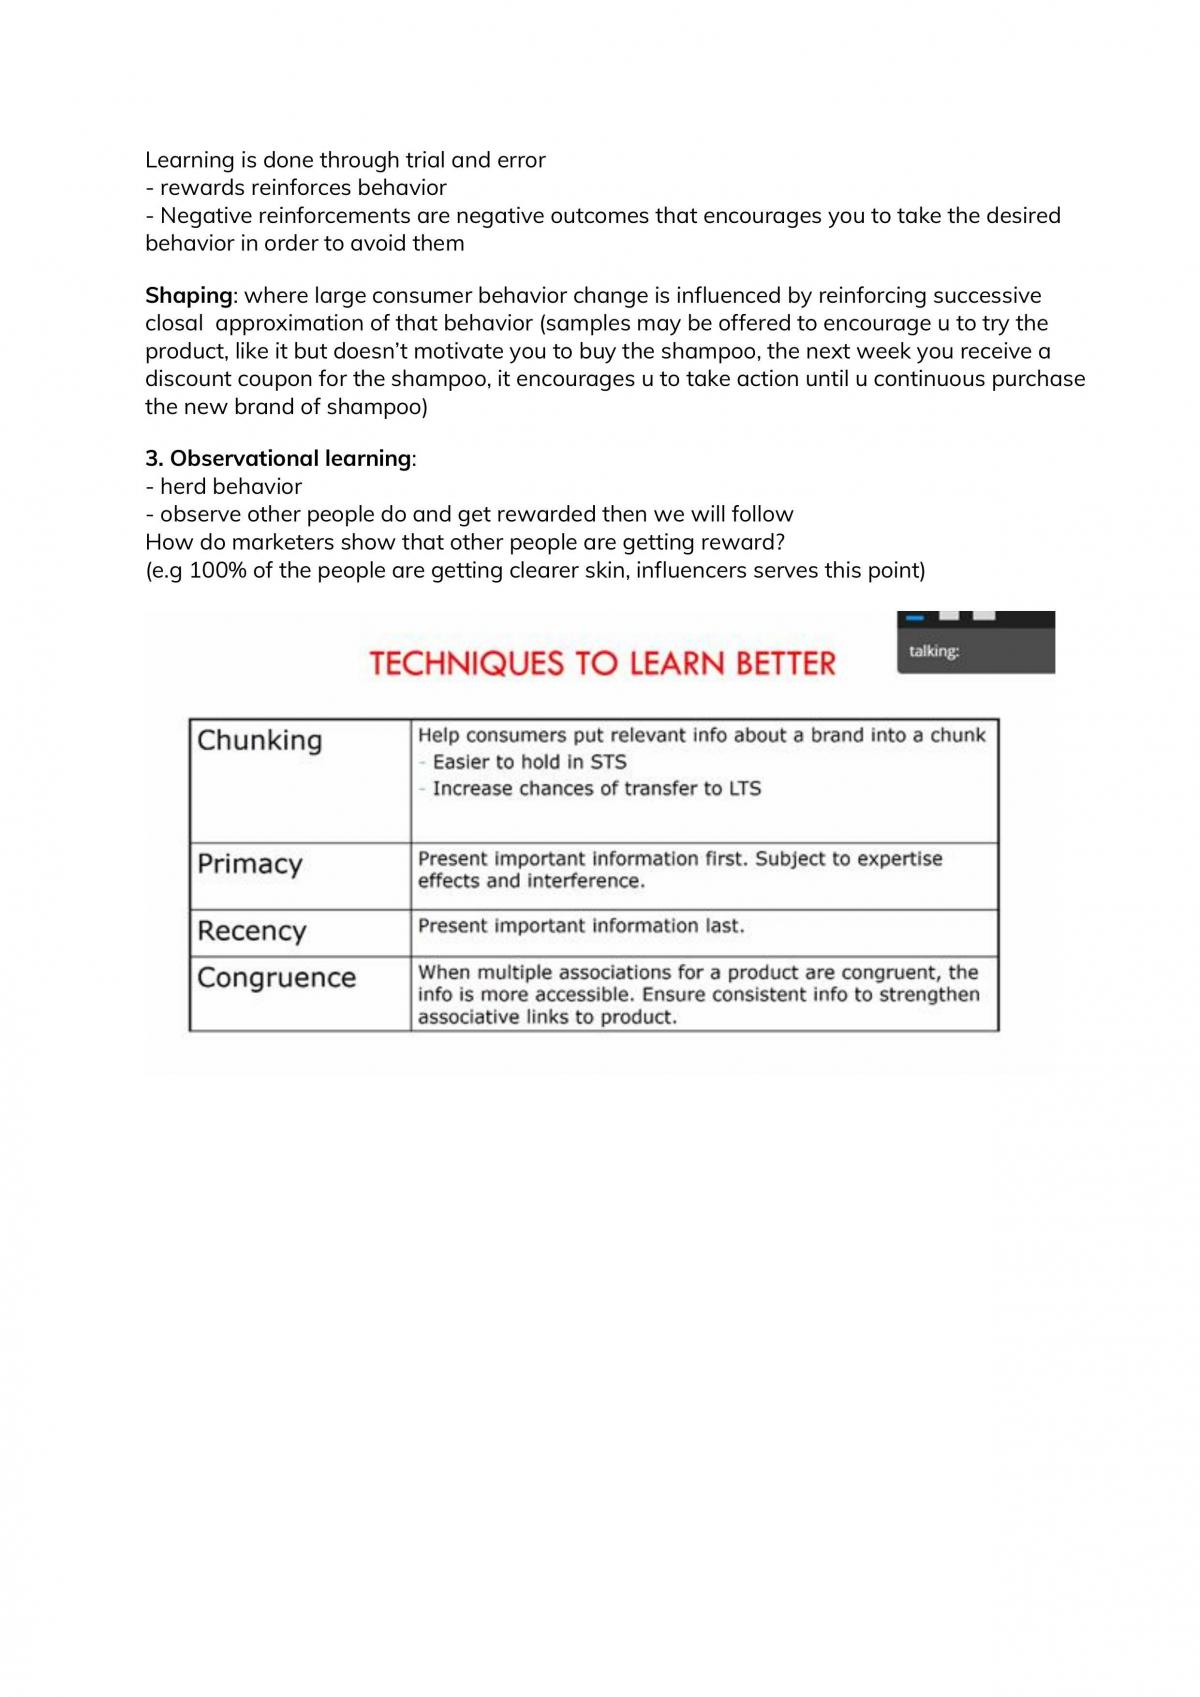 MKT3702 Subject Notes - Page 22